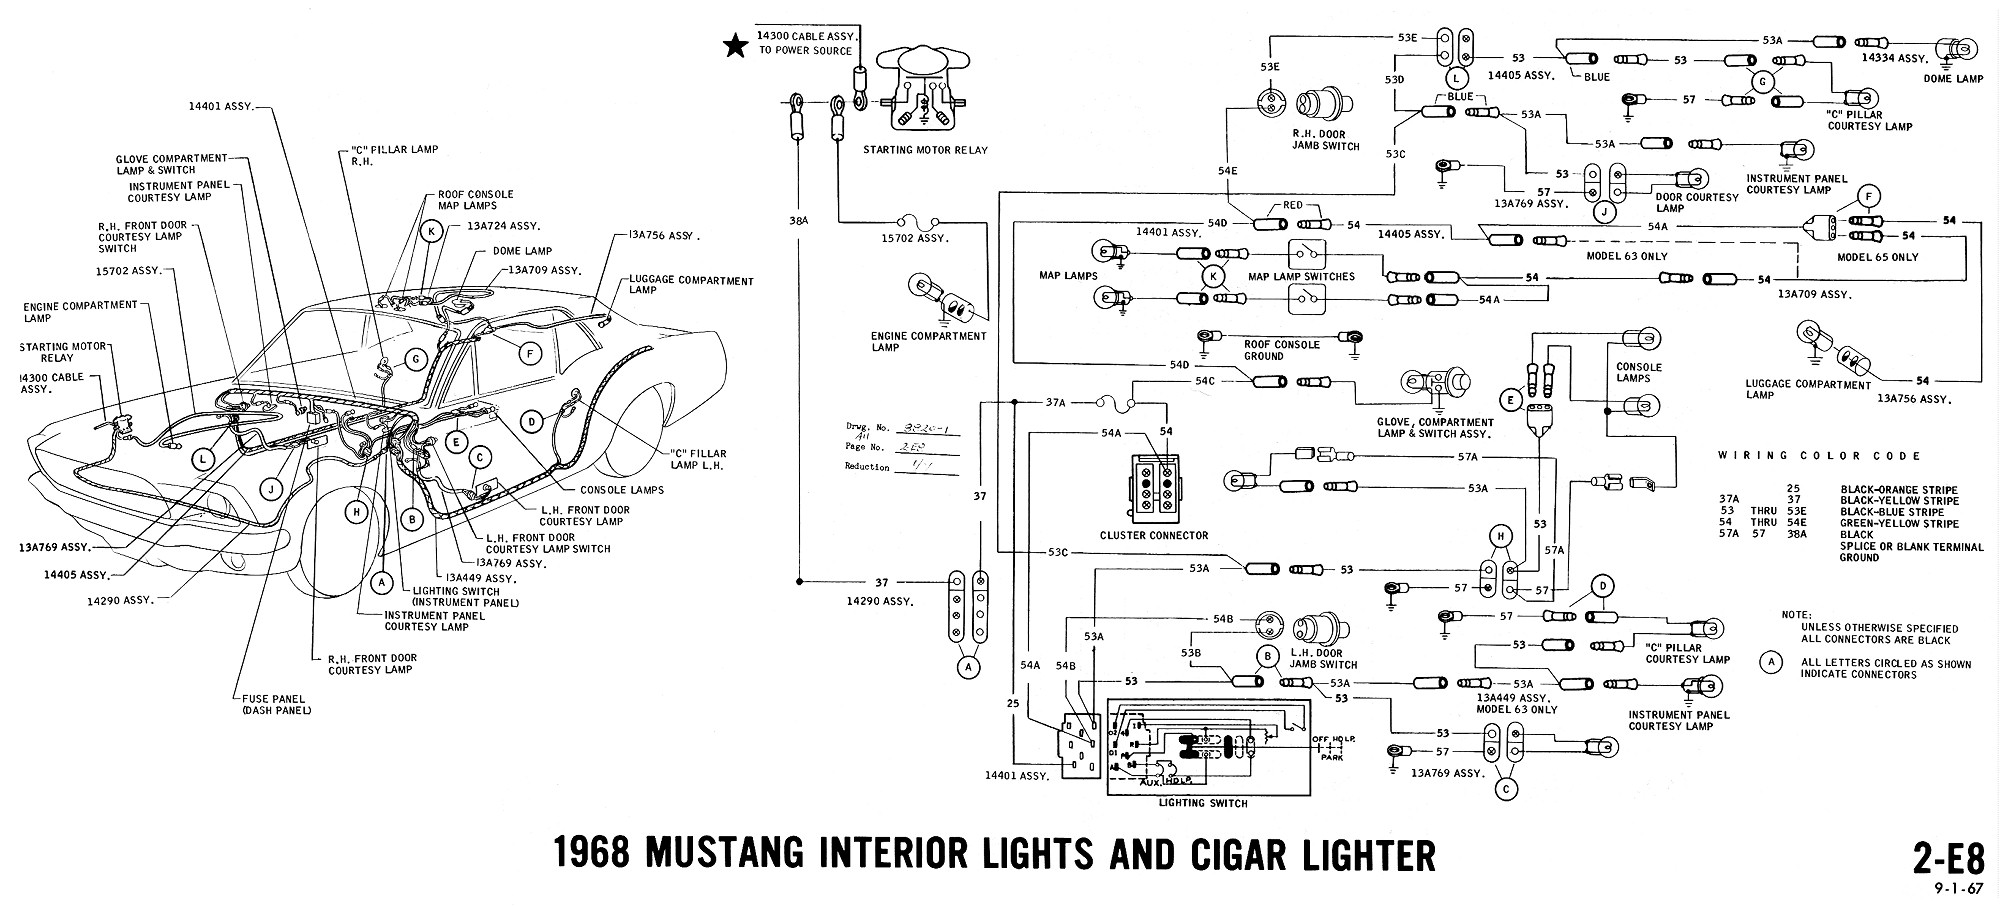 hight resolution of mustang fuse box 1968 electrical wiring diagrams 1990 mustang fuse panel diagram 1968 mustang fuse panel